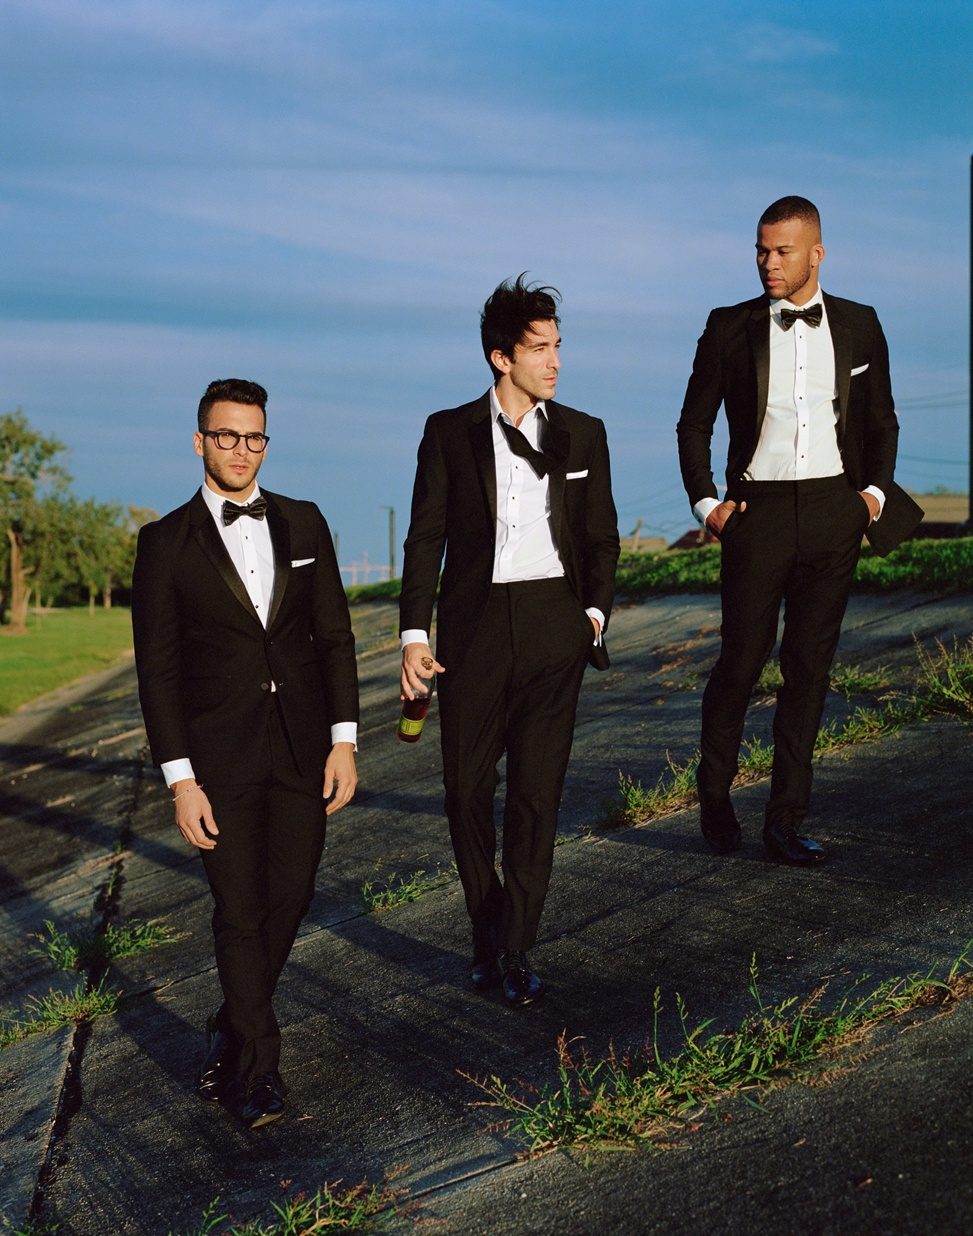 Three men walking in generation tux suits. One holds a bottle of alcohol with his bow-tie undone.